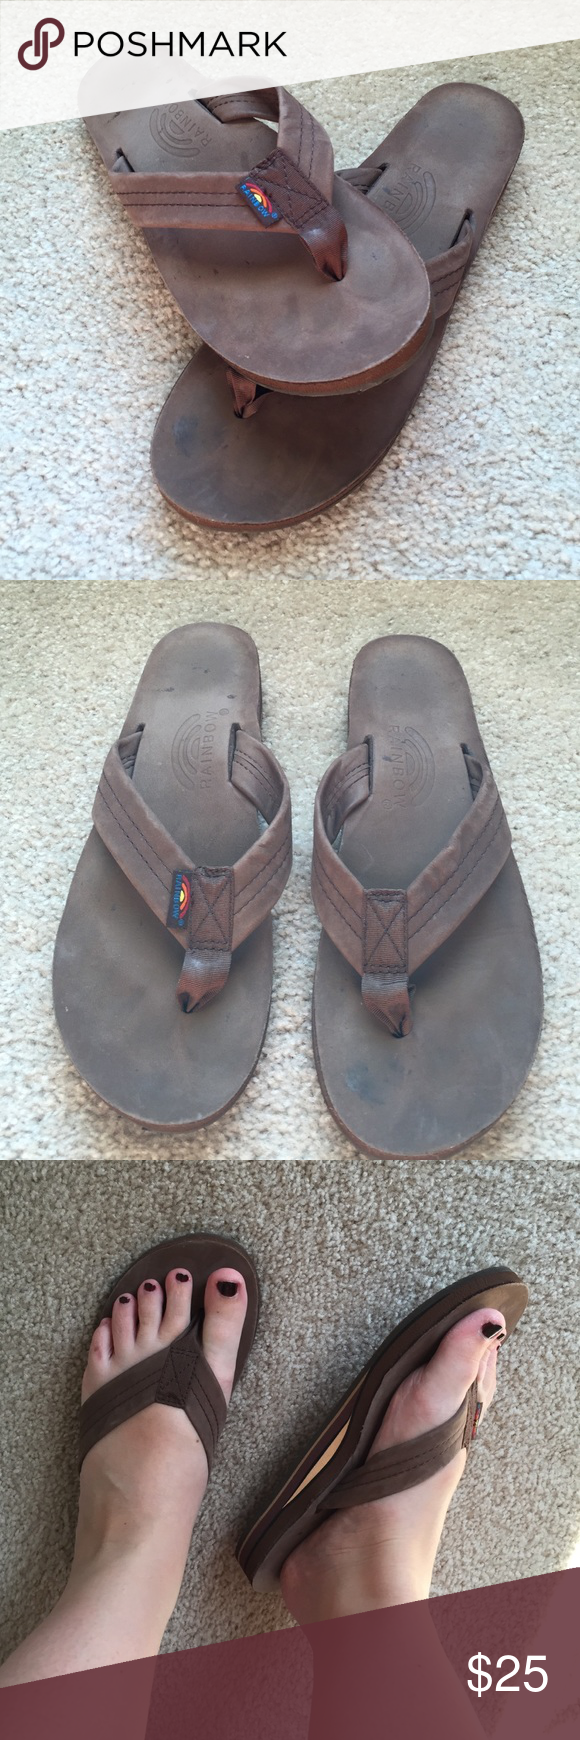 73c0e64d4 Espresso Rainbow sandals These are brand new women s Rainbow sandals. Worn  maybe once